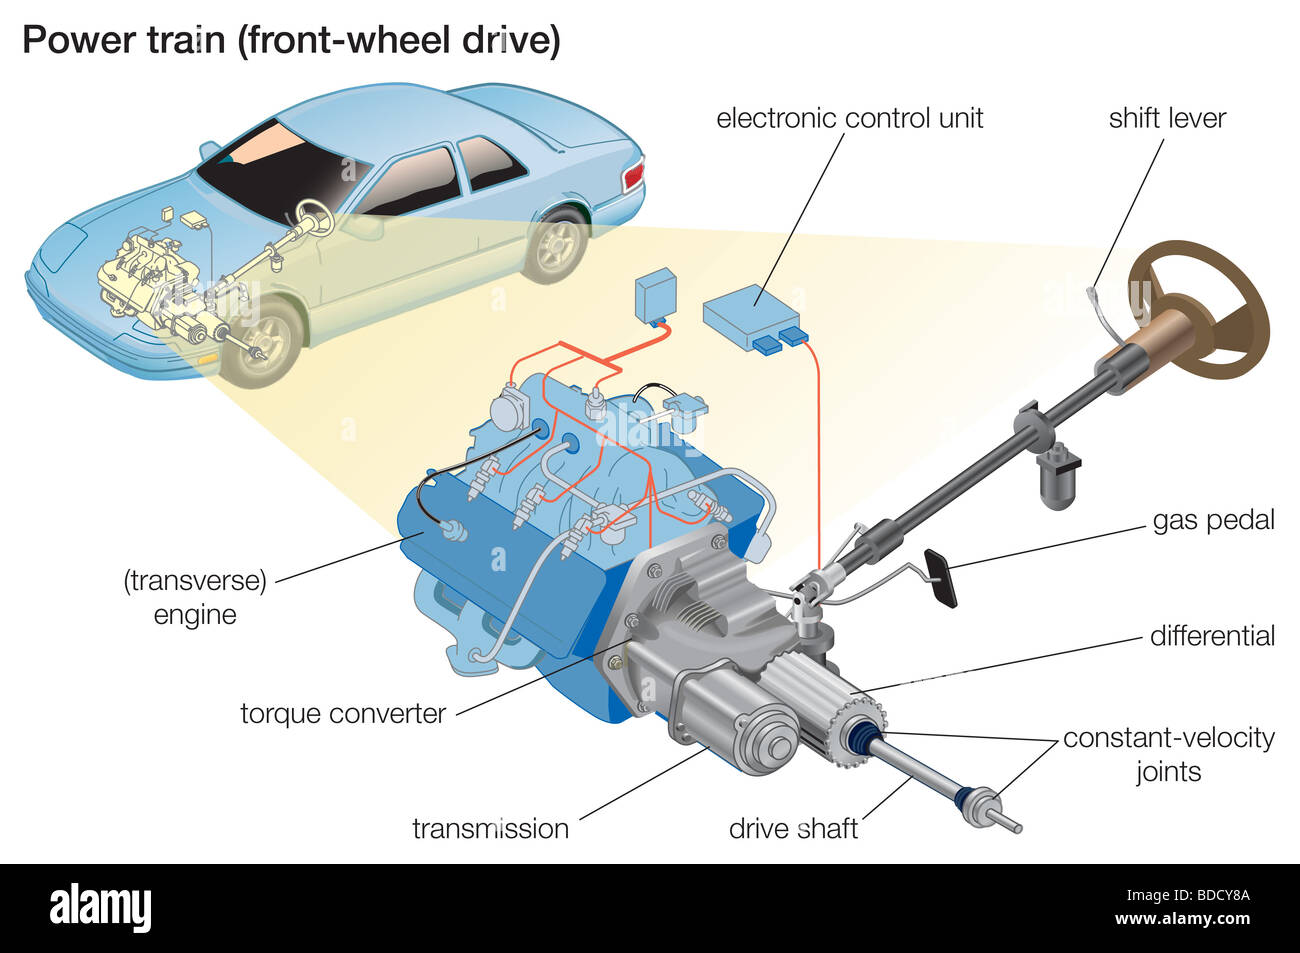 front wheel drive stock photo 25485722 alamy rh alamy com front wheel drive axle diagram front wheel drive suspension diagram